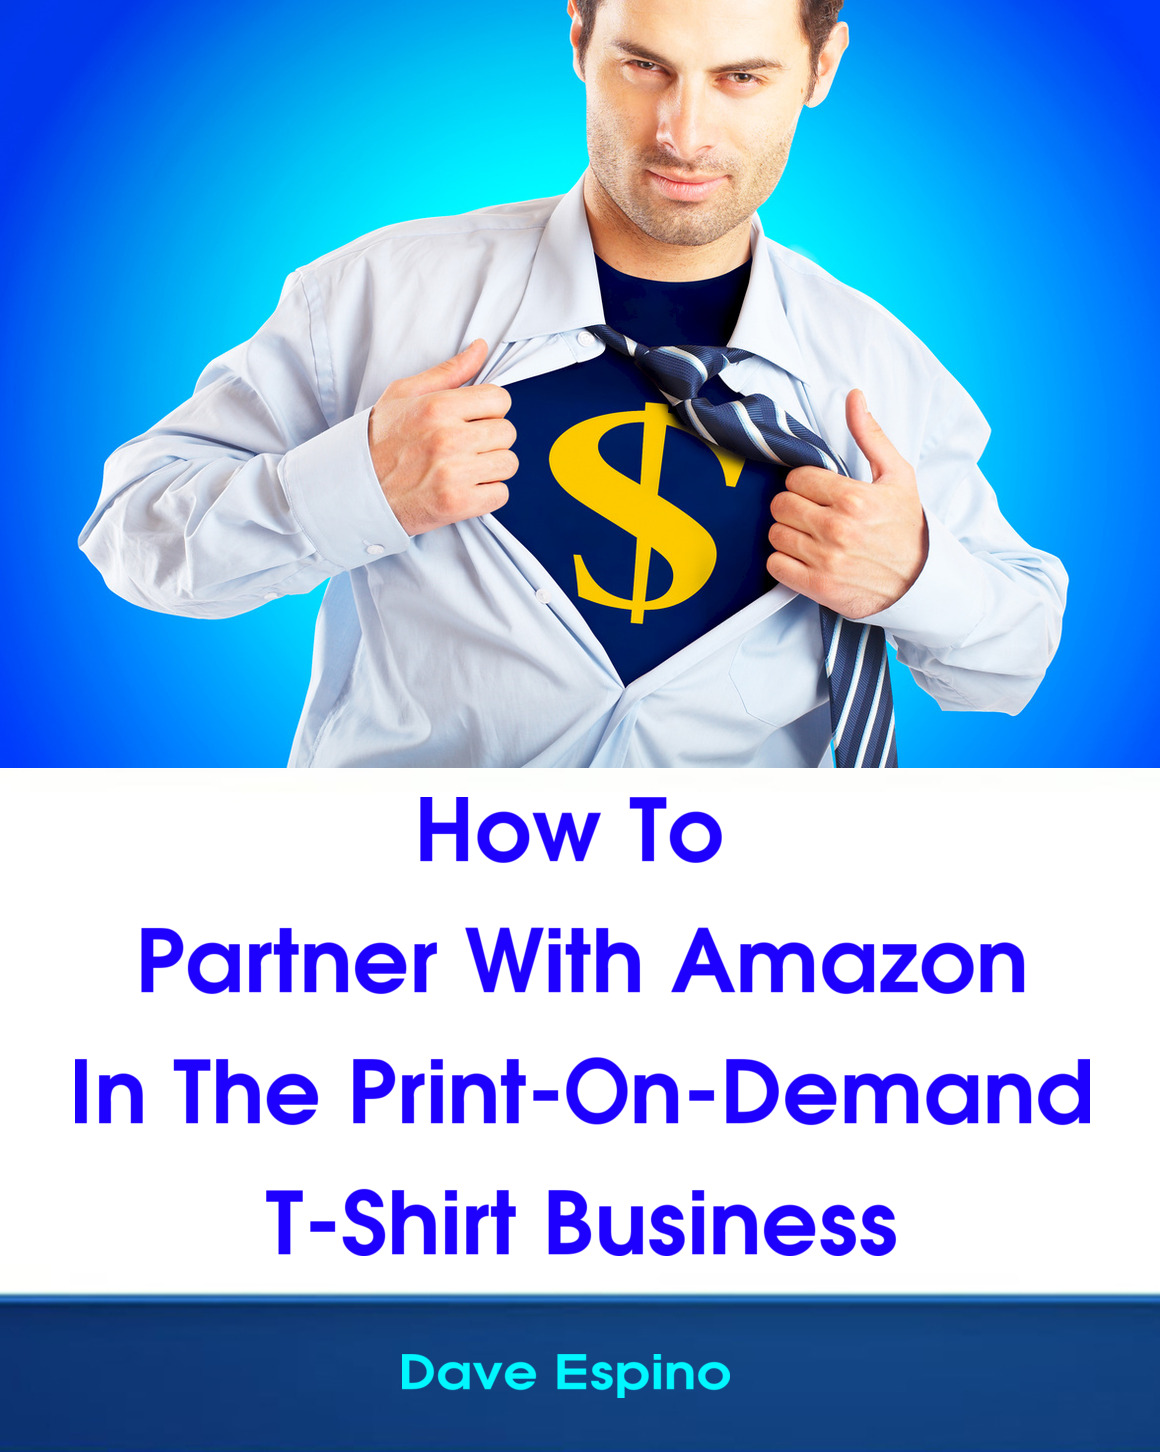 Merch By Amazon - How To Partner With Amazon In The Print-On-Demand T-Shirt Business (Online Video Course) [Online Code]